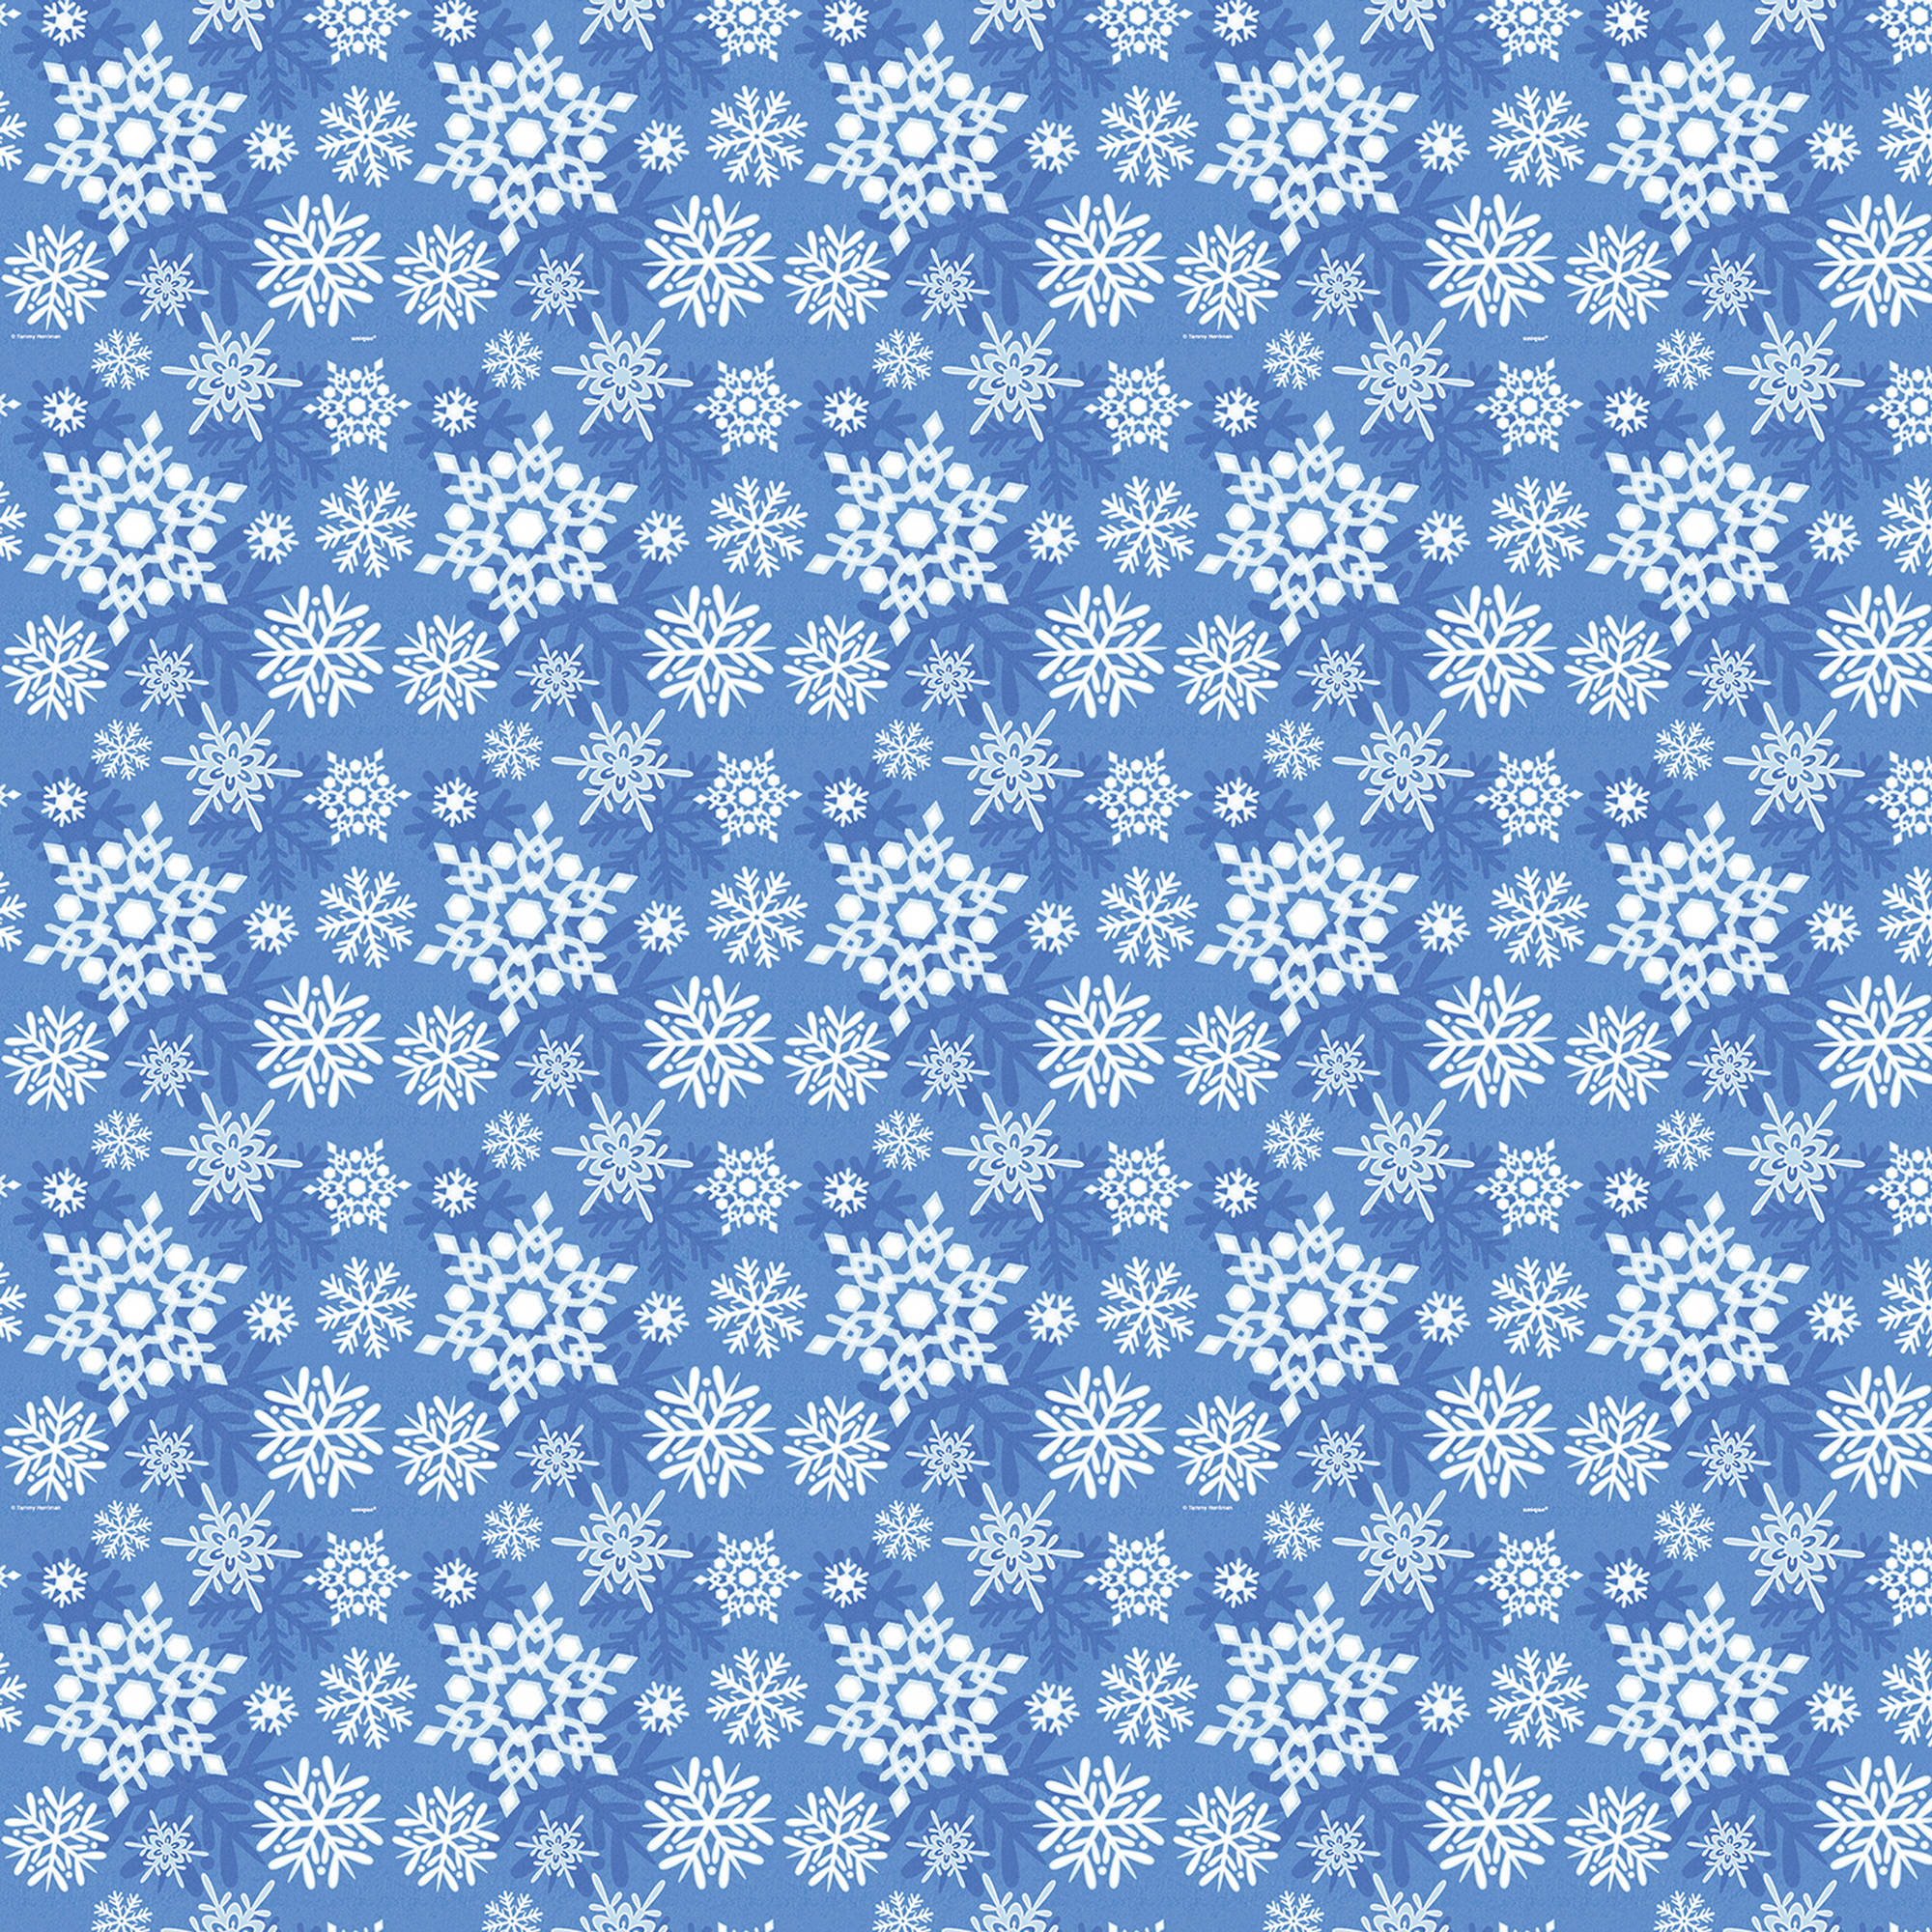 Winter Snowflake Holiday Wrapping Paper